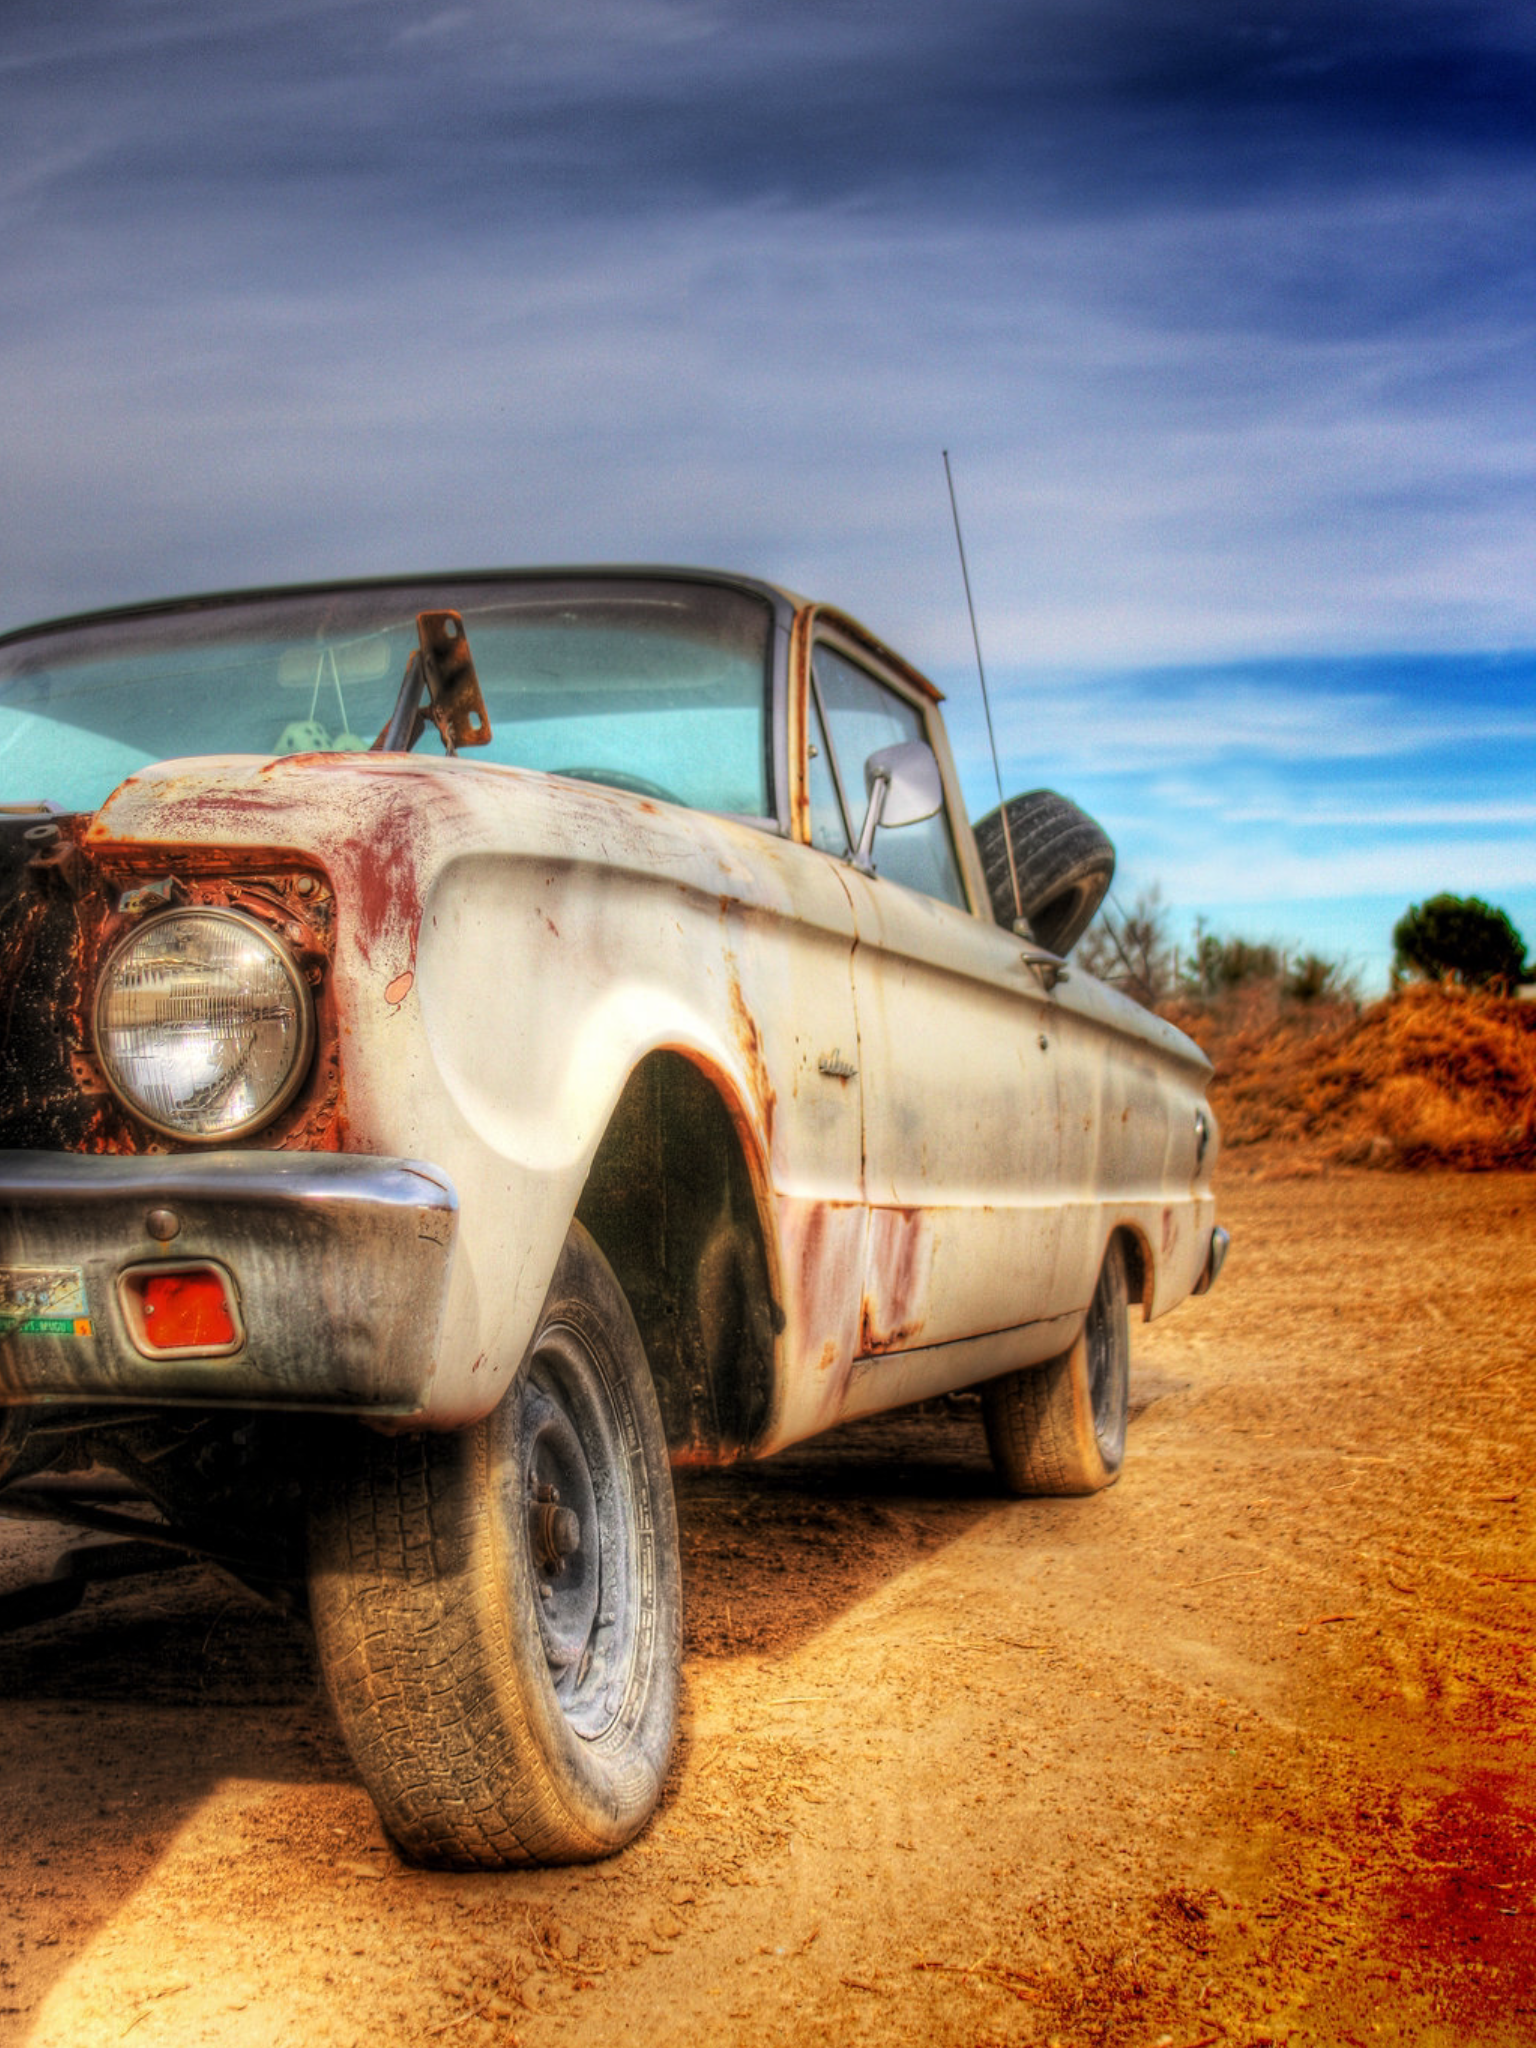 Ranchero 1. The old ranchero project car in my backyard. Source ...